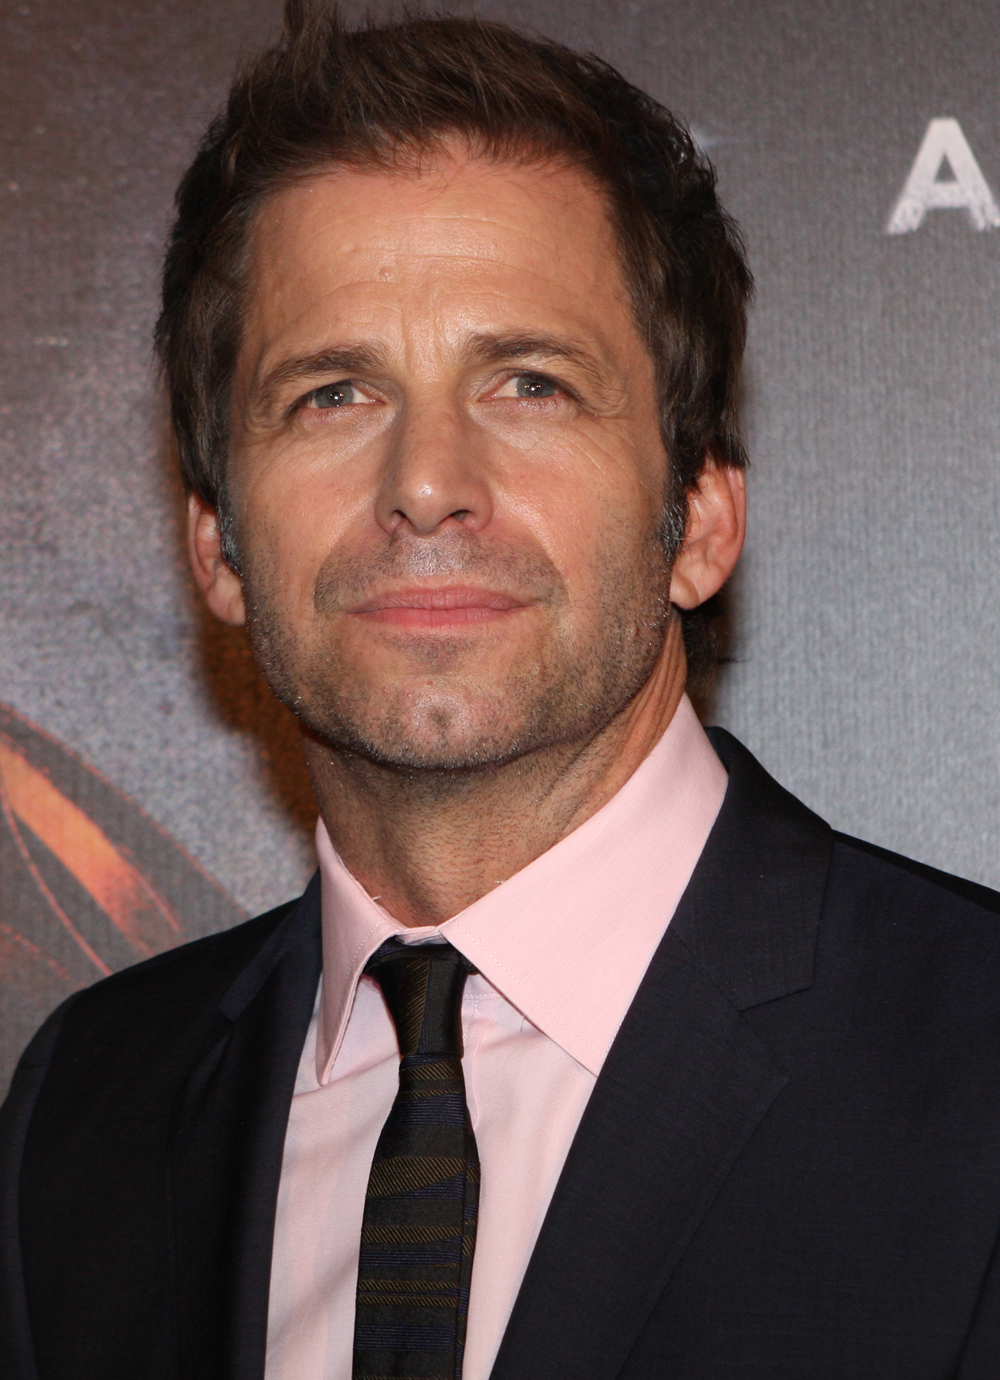 The 52-year old son of father Charles Edward Snyder and mother Marsha Snyder, 170 cm tall Zack Snyder in 2018 photo